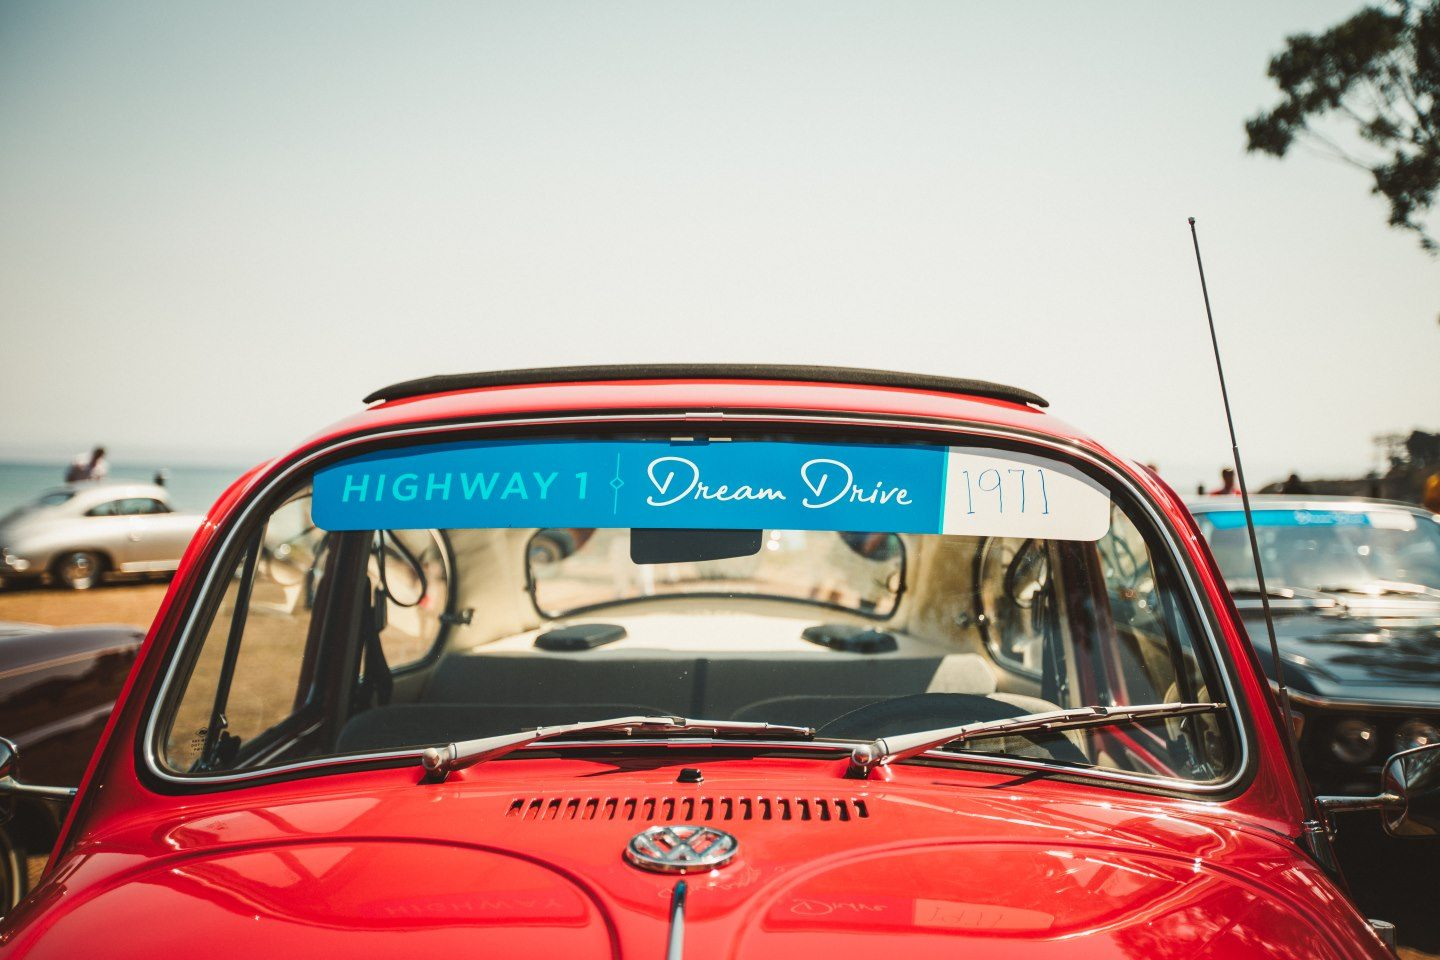 An old VW Beetle on Highway 1 at the Dream Drive